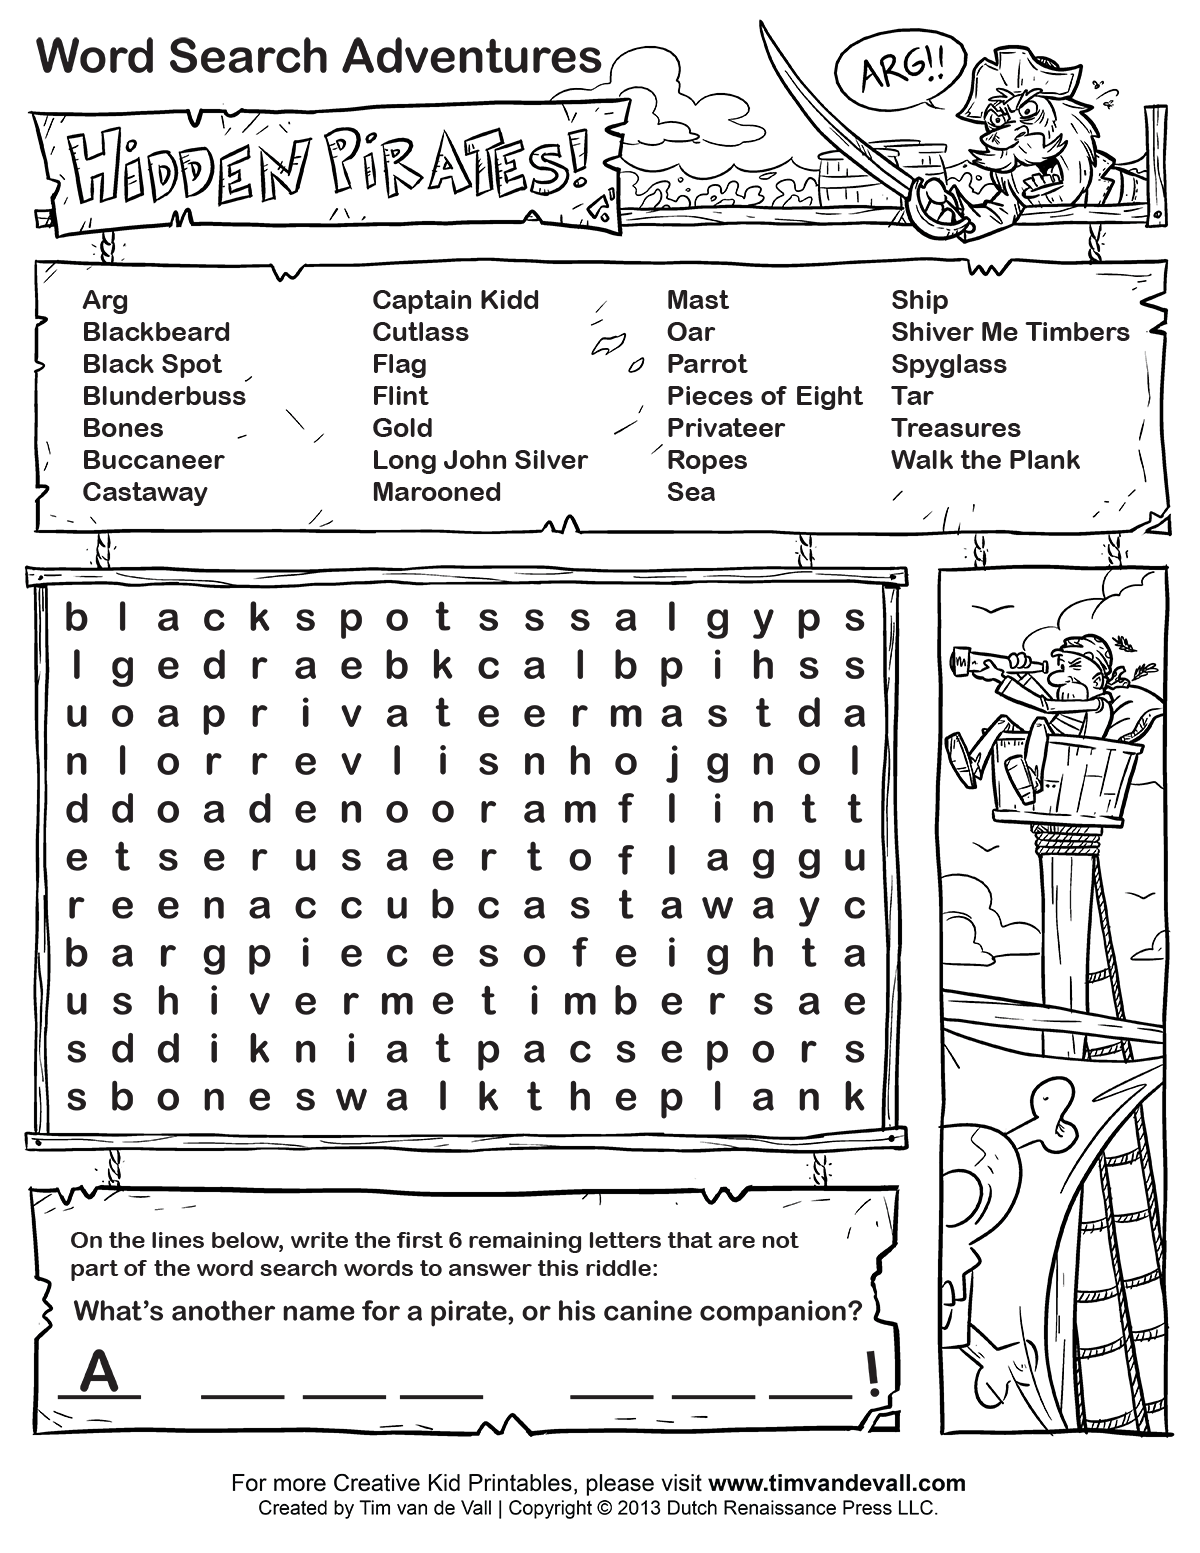 Dashing image with free printable word searches for kids